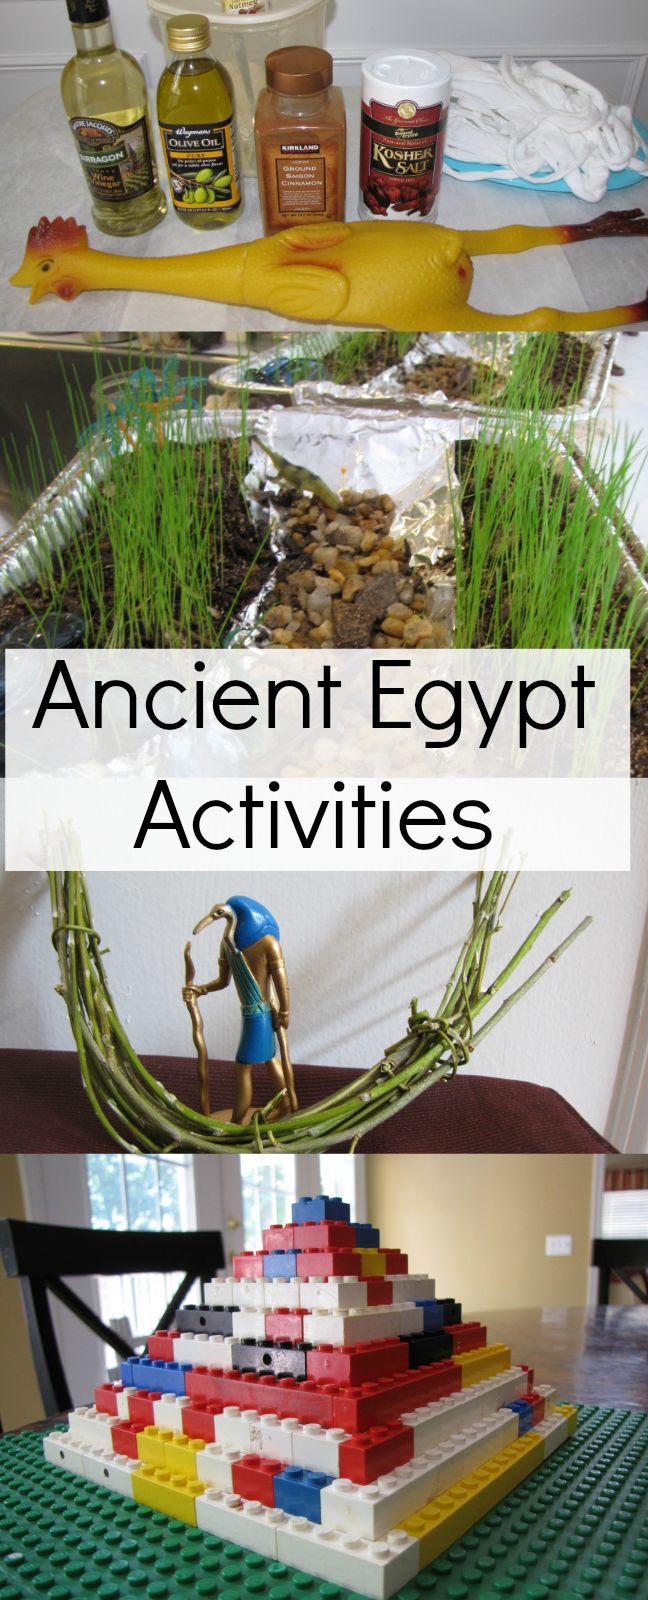 Ancient Egypt activities for kids. Mummify a rubber chicken, build a LEGO pyramid, make a Nile River, a reed boat and more. | Creekside Learning